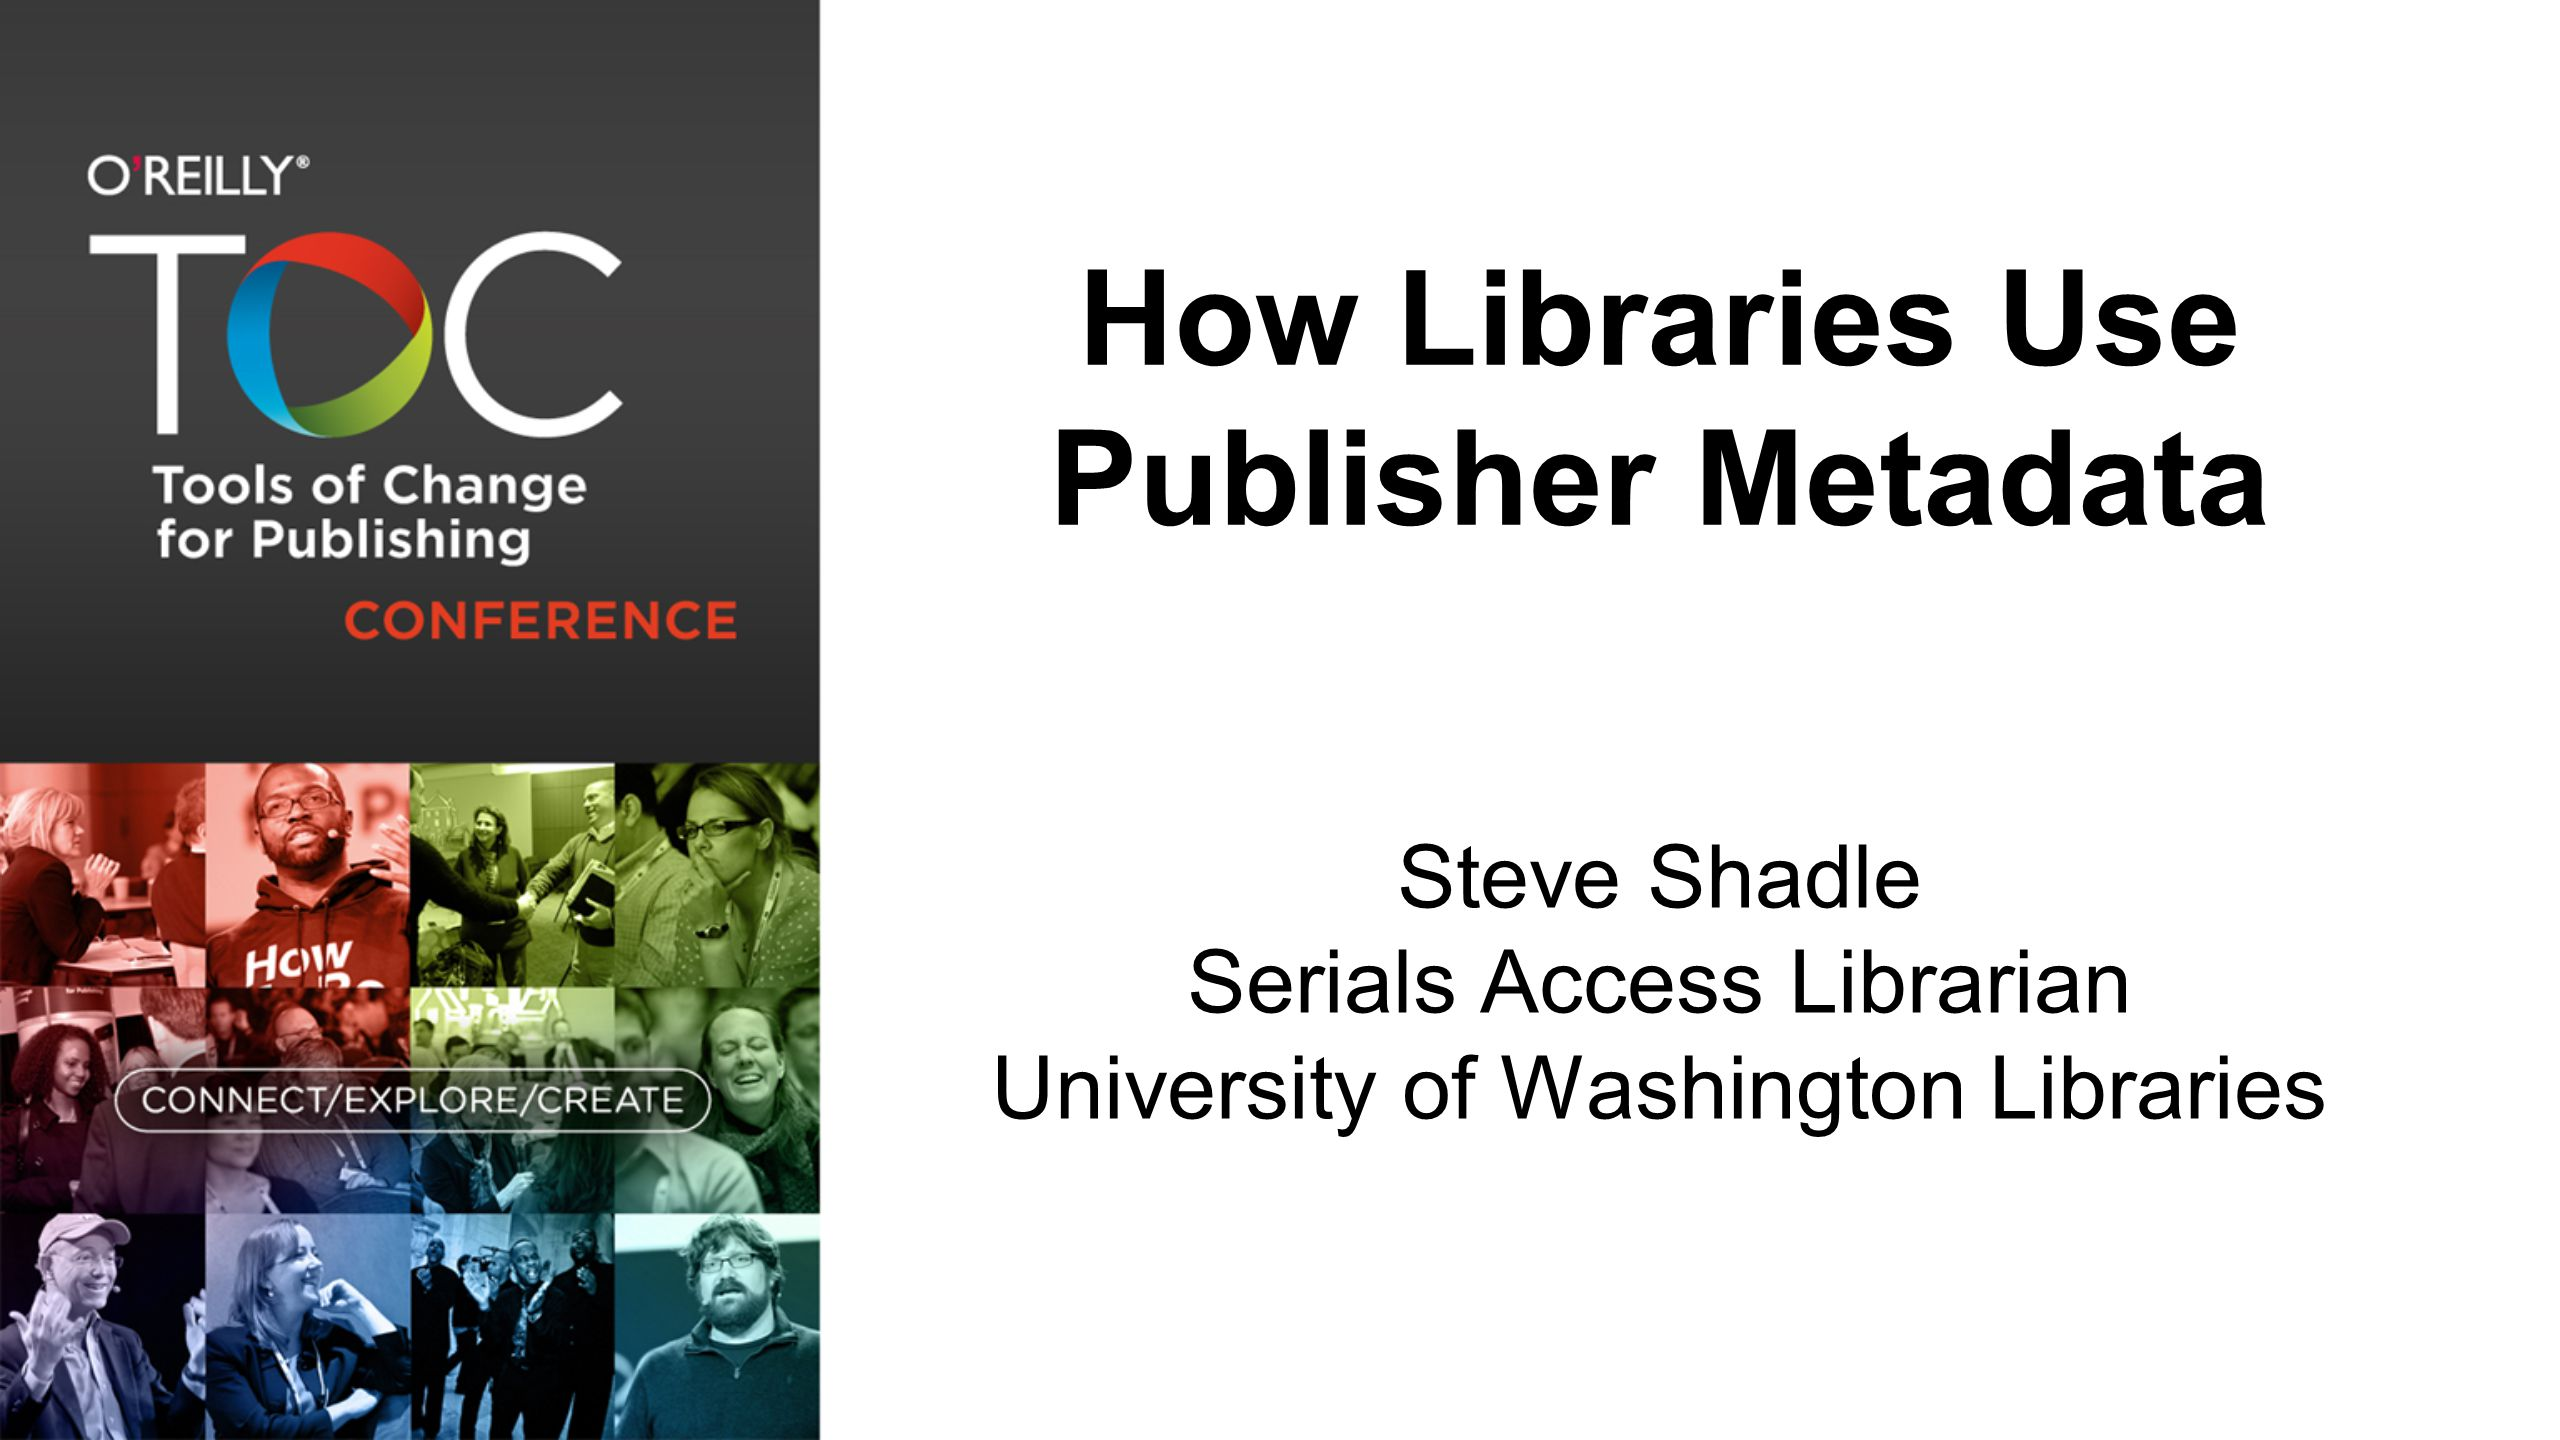 Purpose Provide an overview of how libraries provide access to publisher content using publisher-provided metadata  Library Catalog  OpenURL Link Resolver  Library Discovery System